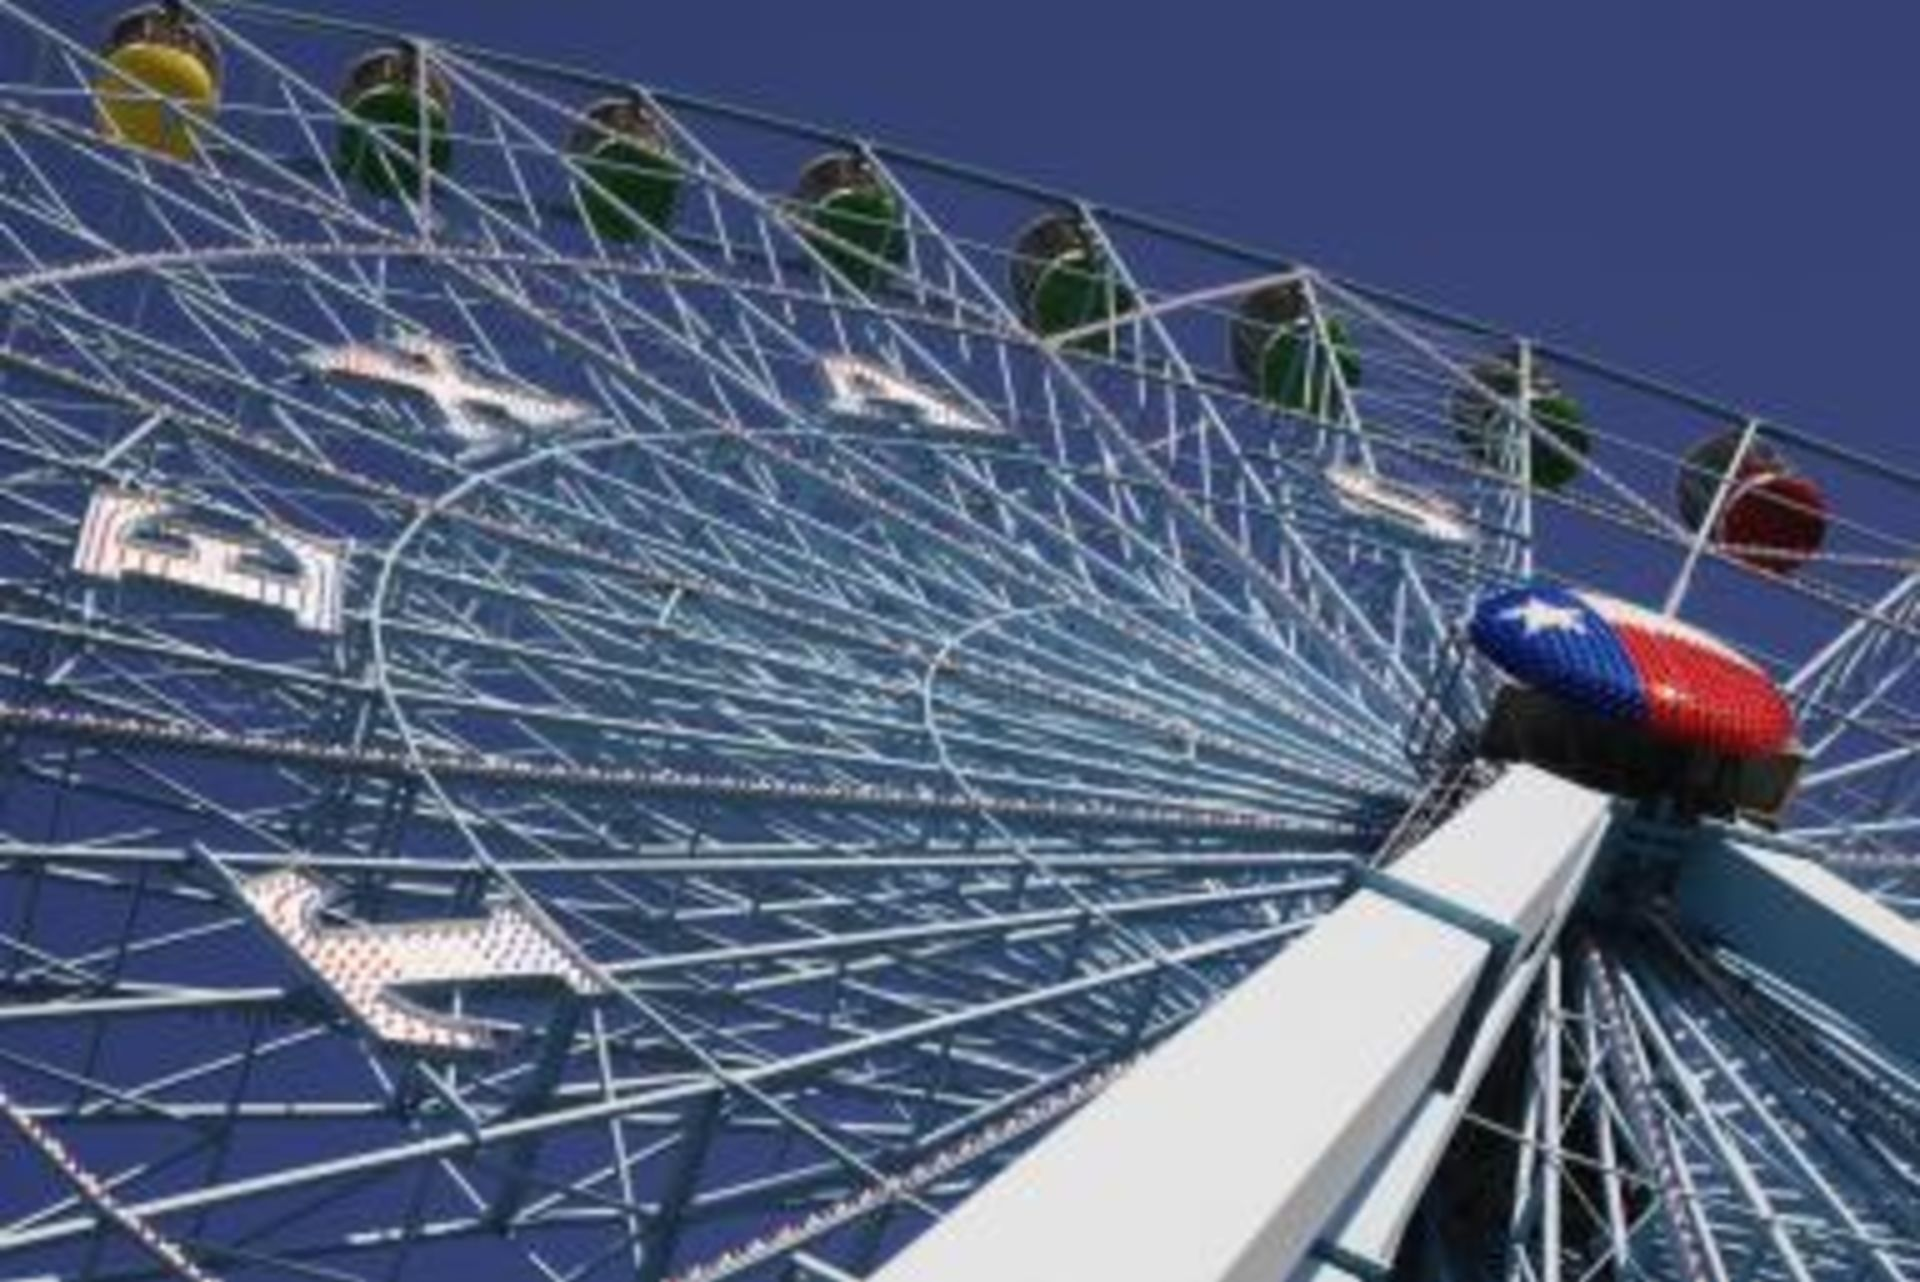 The State Fair is coming!